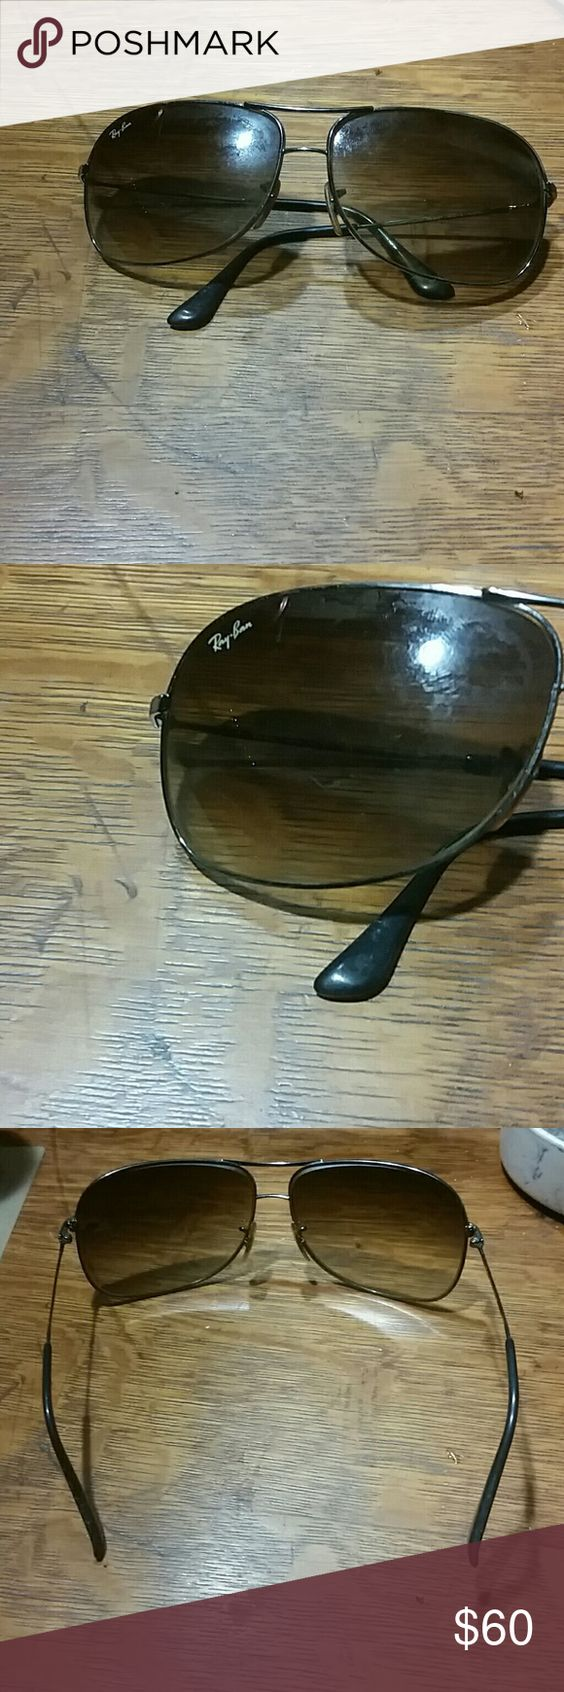 Ray Ban Aviator Sunglasses These are in pretty good condition still for them being 4 yrs old. Minimal scratches on the lenses. The only thing that is wrong with them is the arms are a little crooked as shown in pictures. I'm sure they can be straightened out. Ray-Ban Accessories Glasses